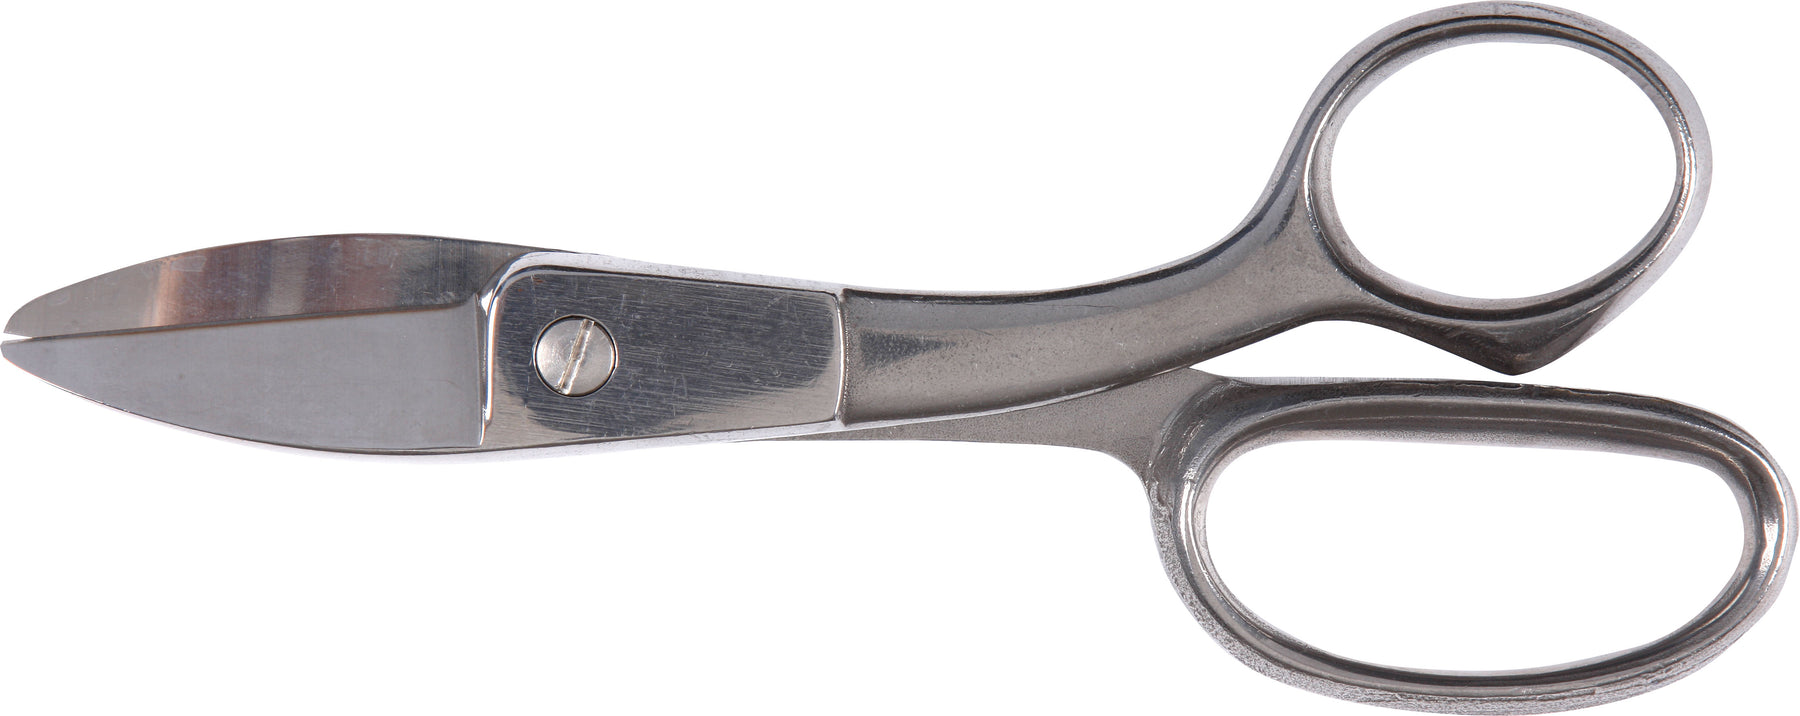 "The 7.5"" Wolff® Utility Shear"